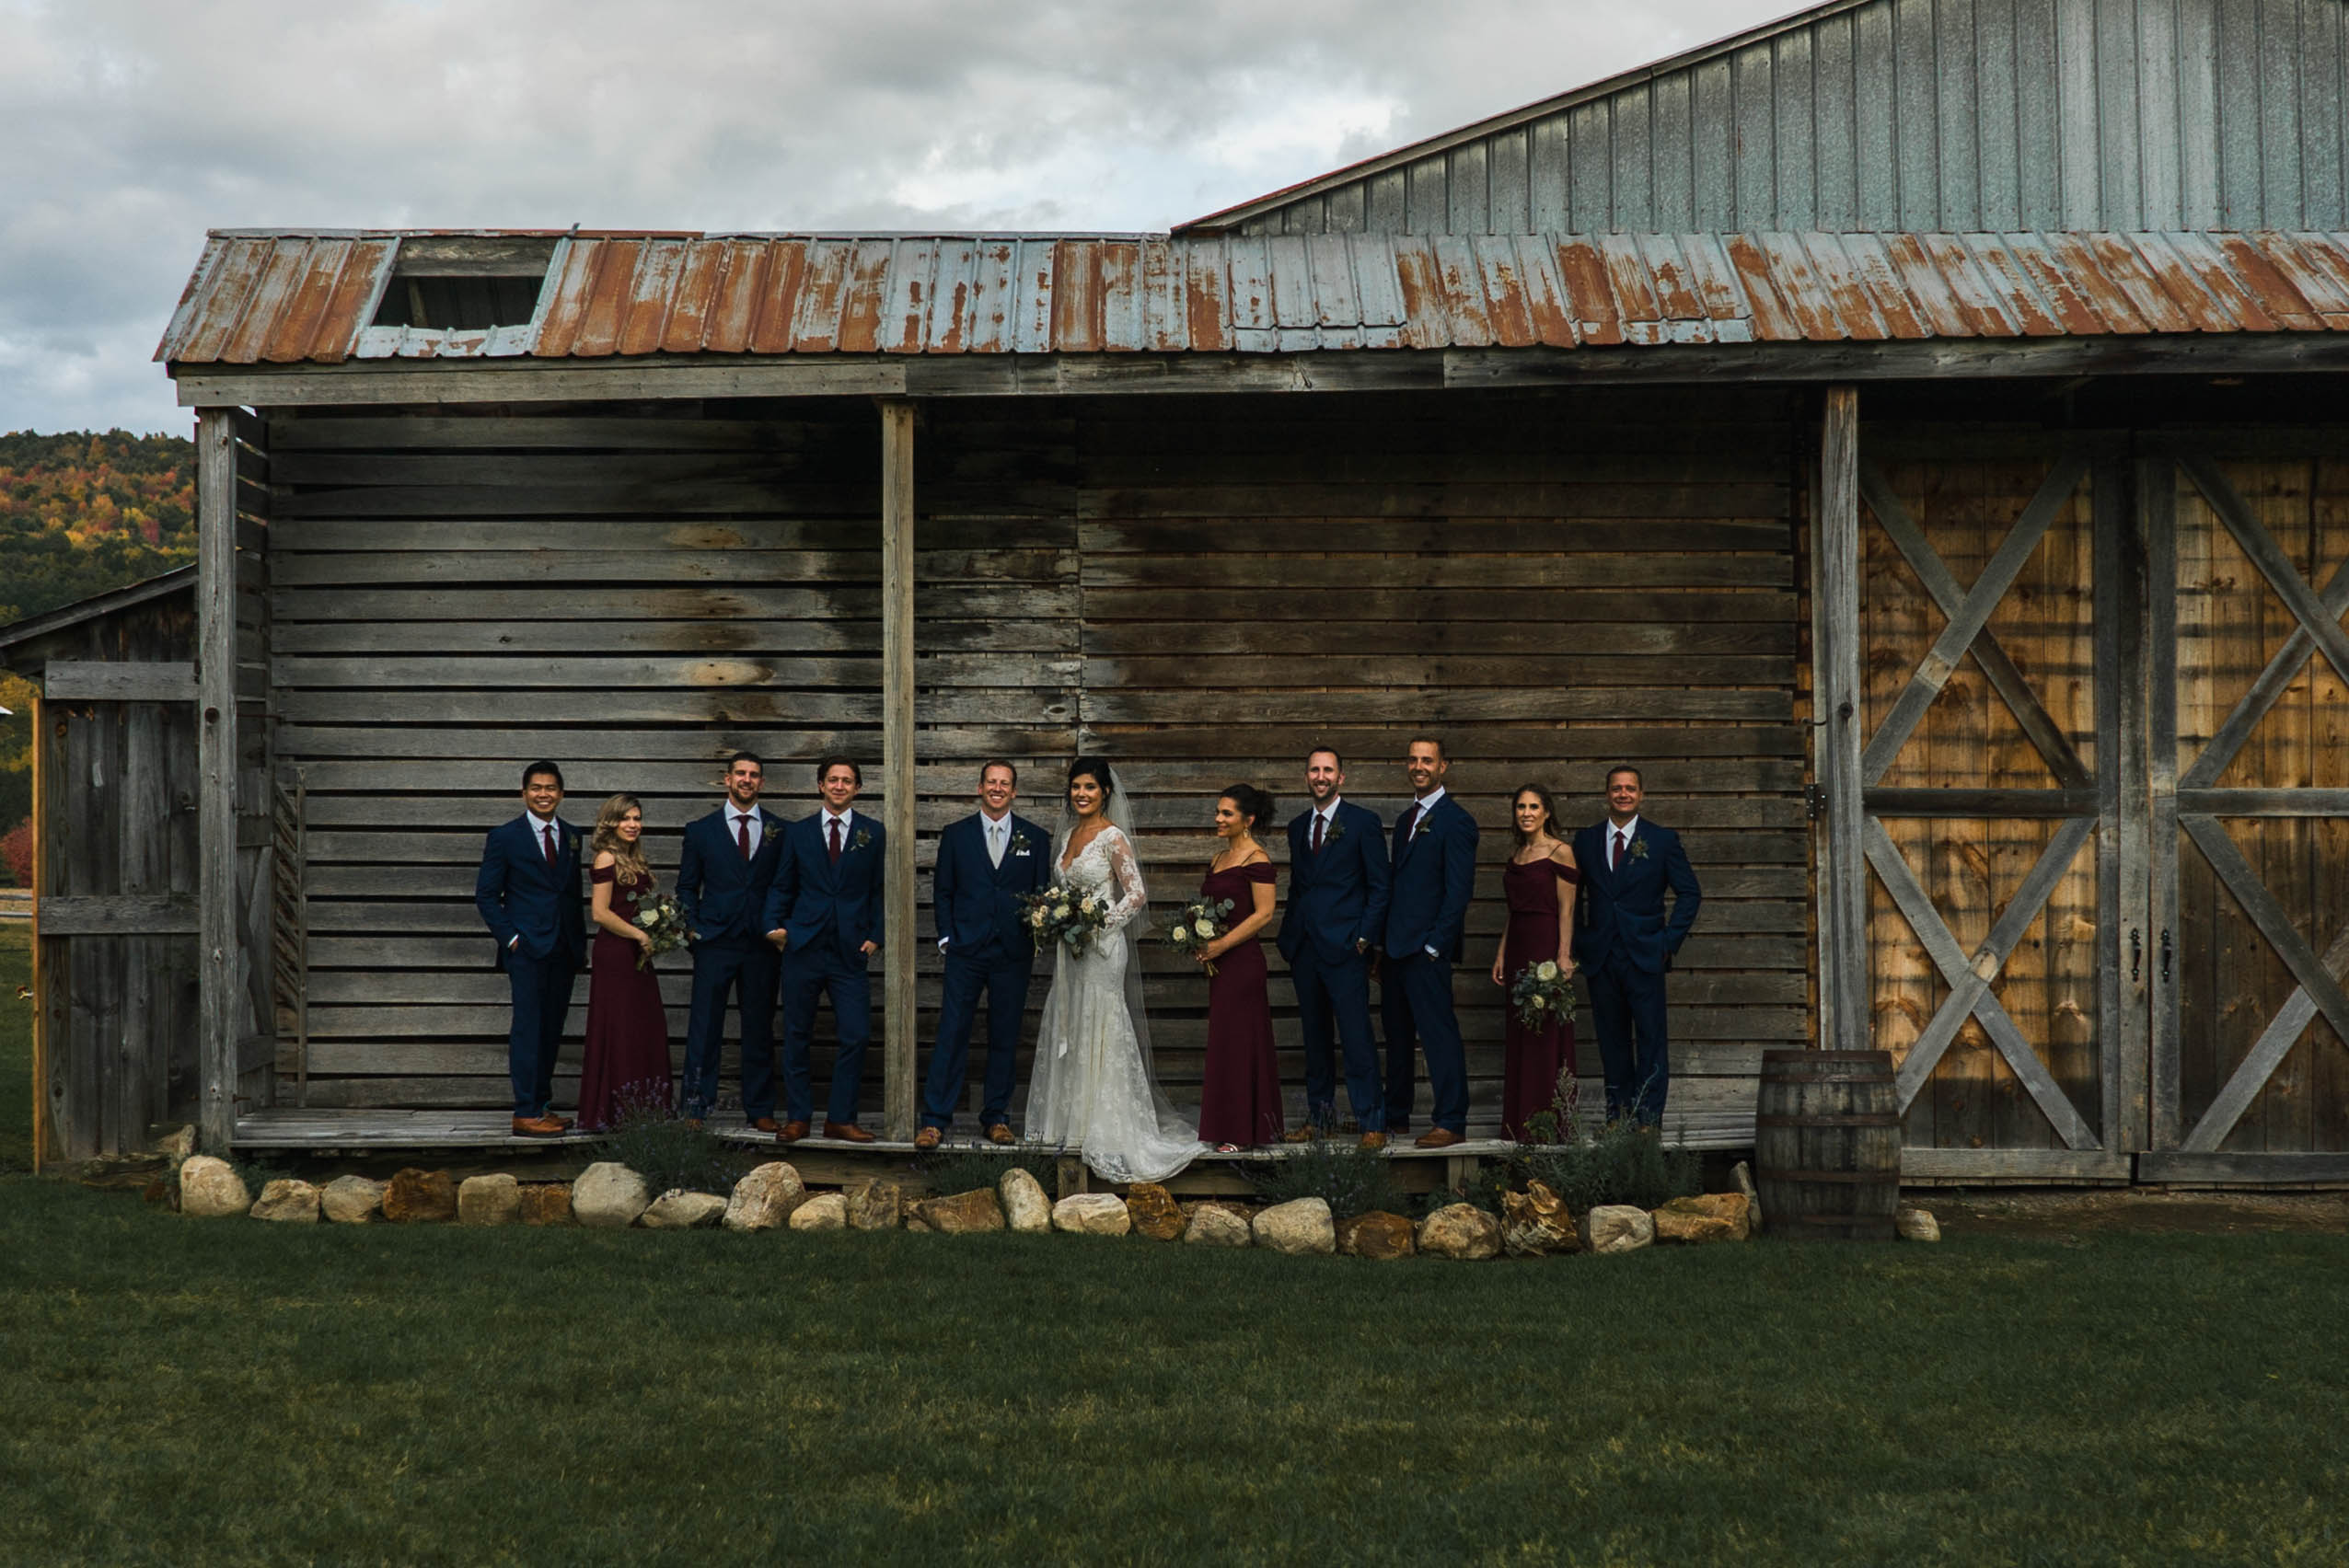 Kate + Tim | Cambridge, New York | Barn at Lakota Farm, Cambridge